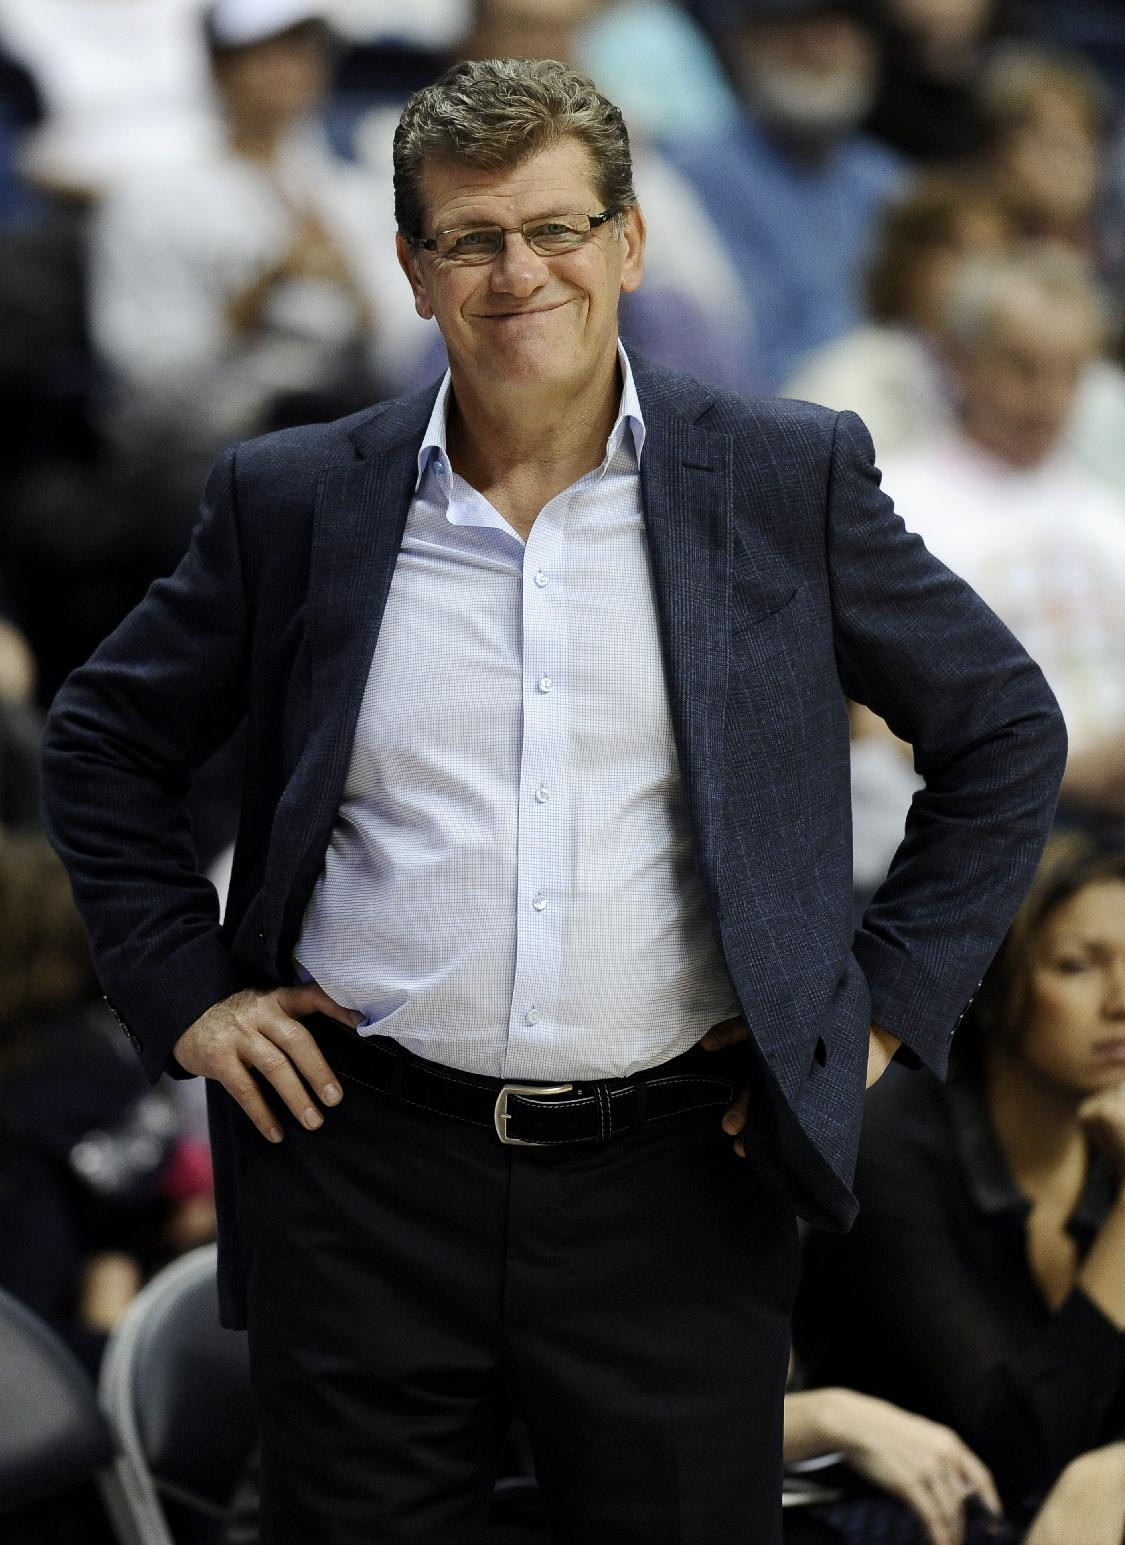 Connecticut coach Geno Auriemma smiles as he watches play during the second half of an NCAA college exhibition basketball game against Ganon, Friday, Nov. 1, 2013, in Storrs, Conn. Connecticut won 101-35